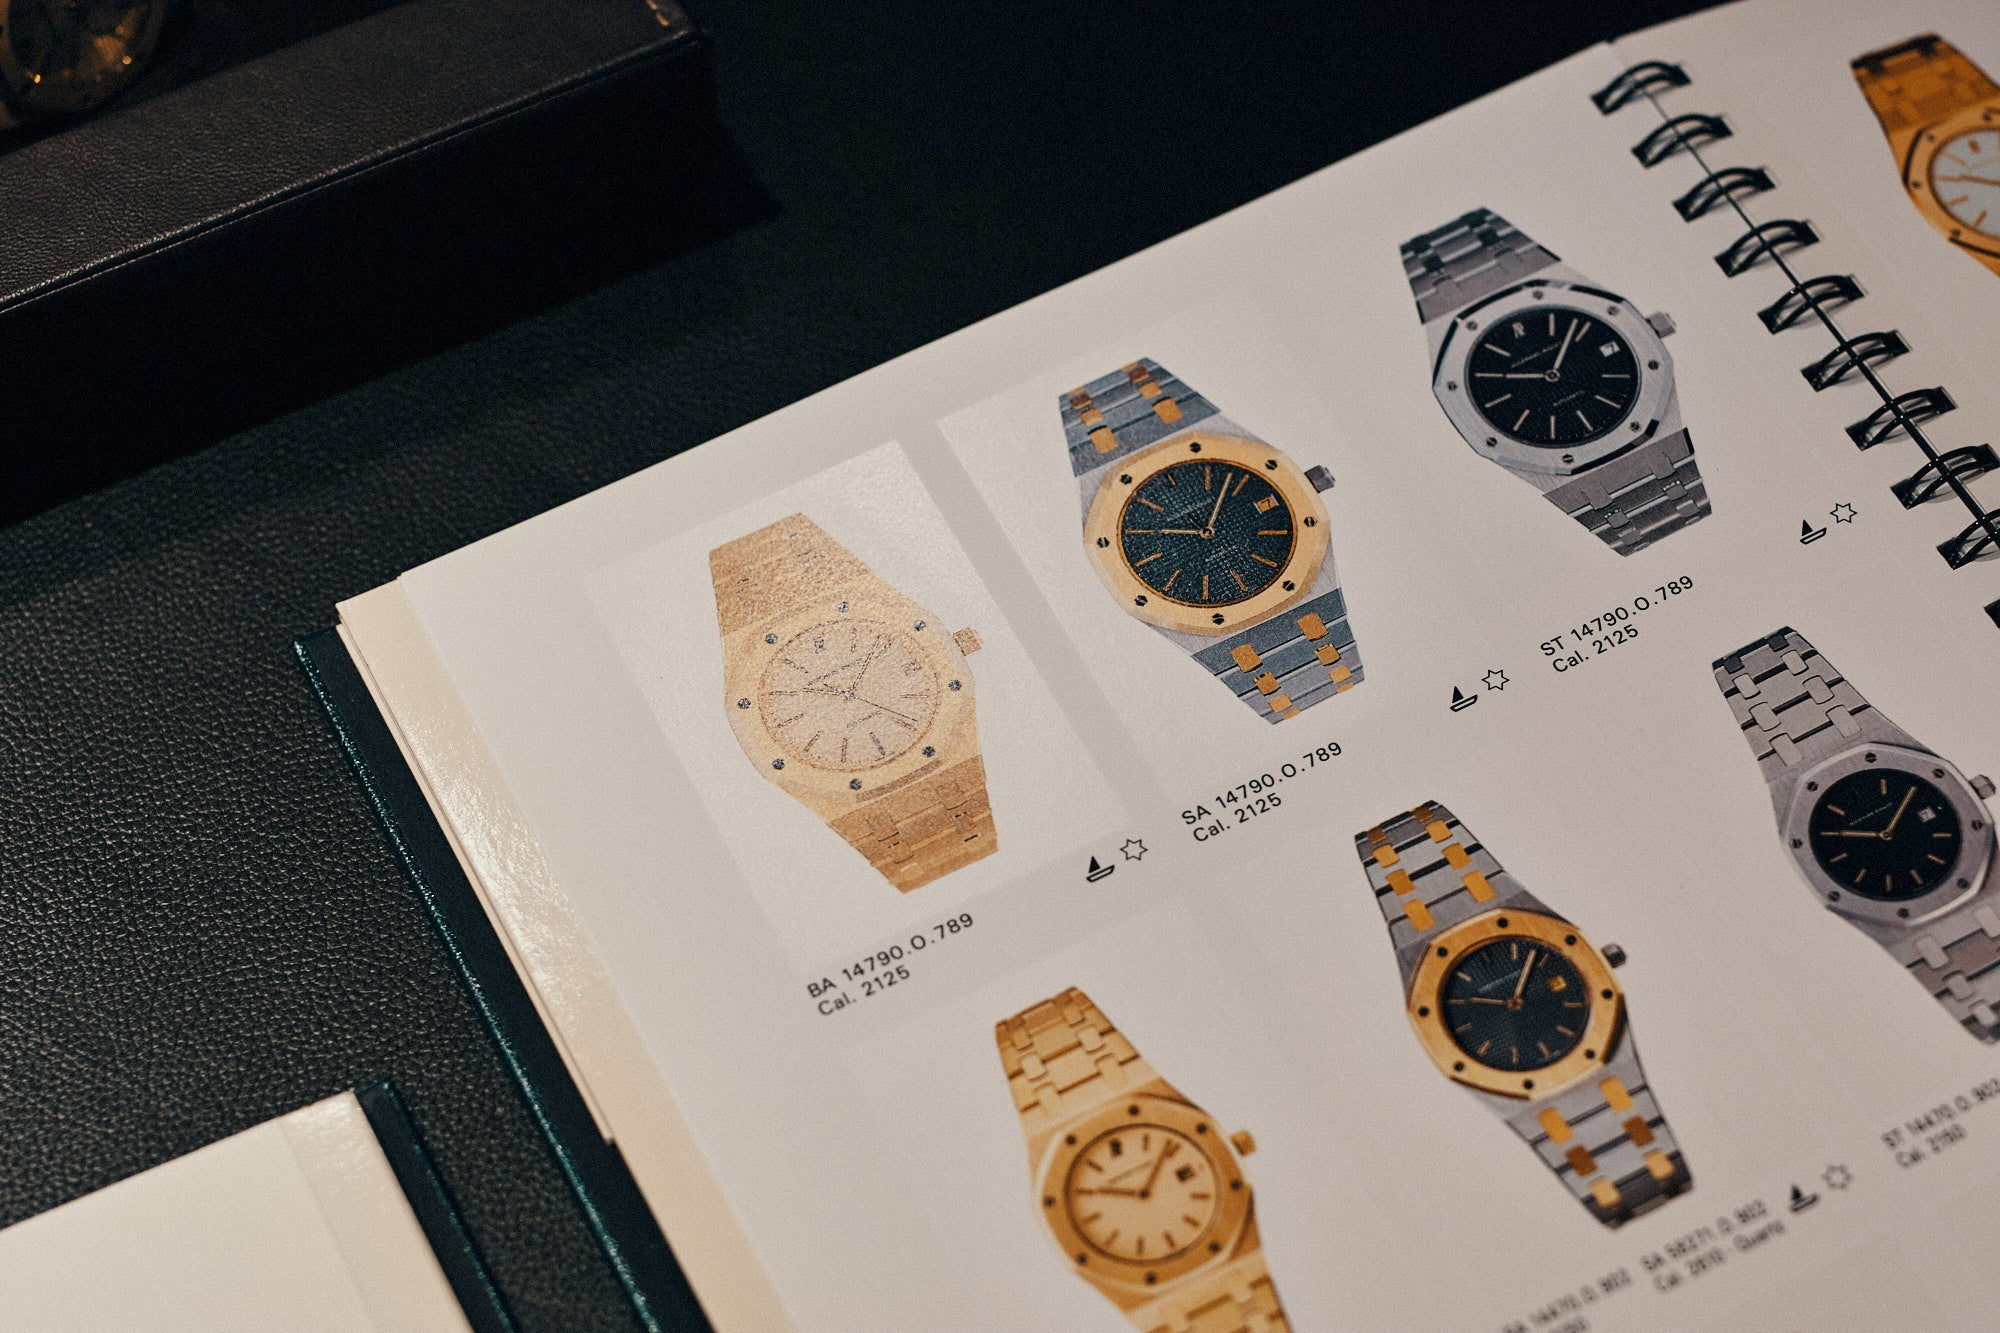 Audemars Piguet Royal Oak 14790 archives catalogue showing variations of the watch for A Collected Man London